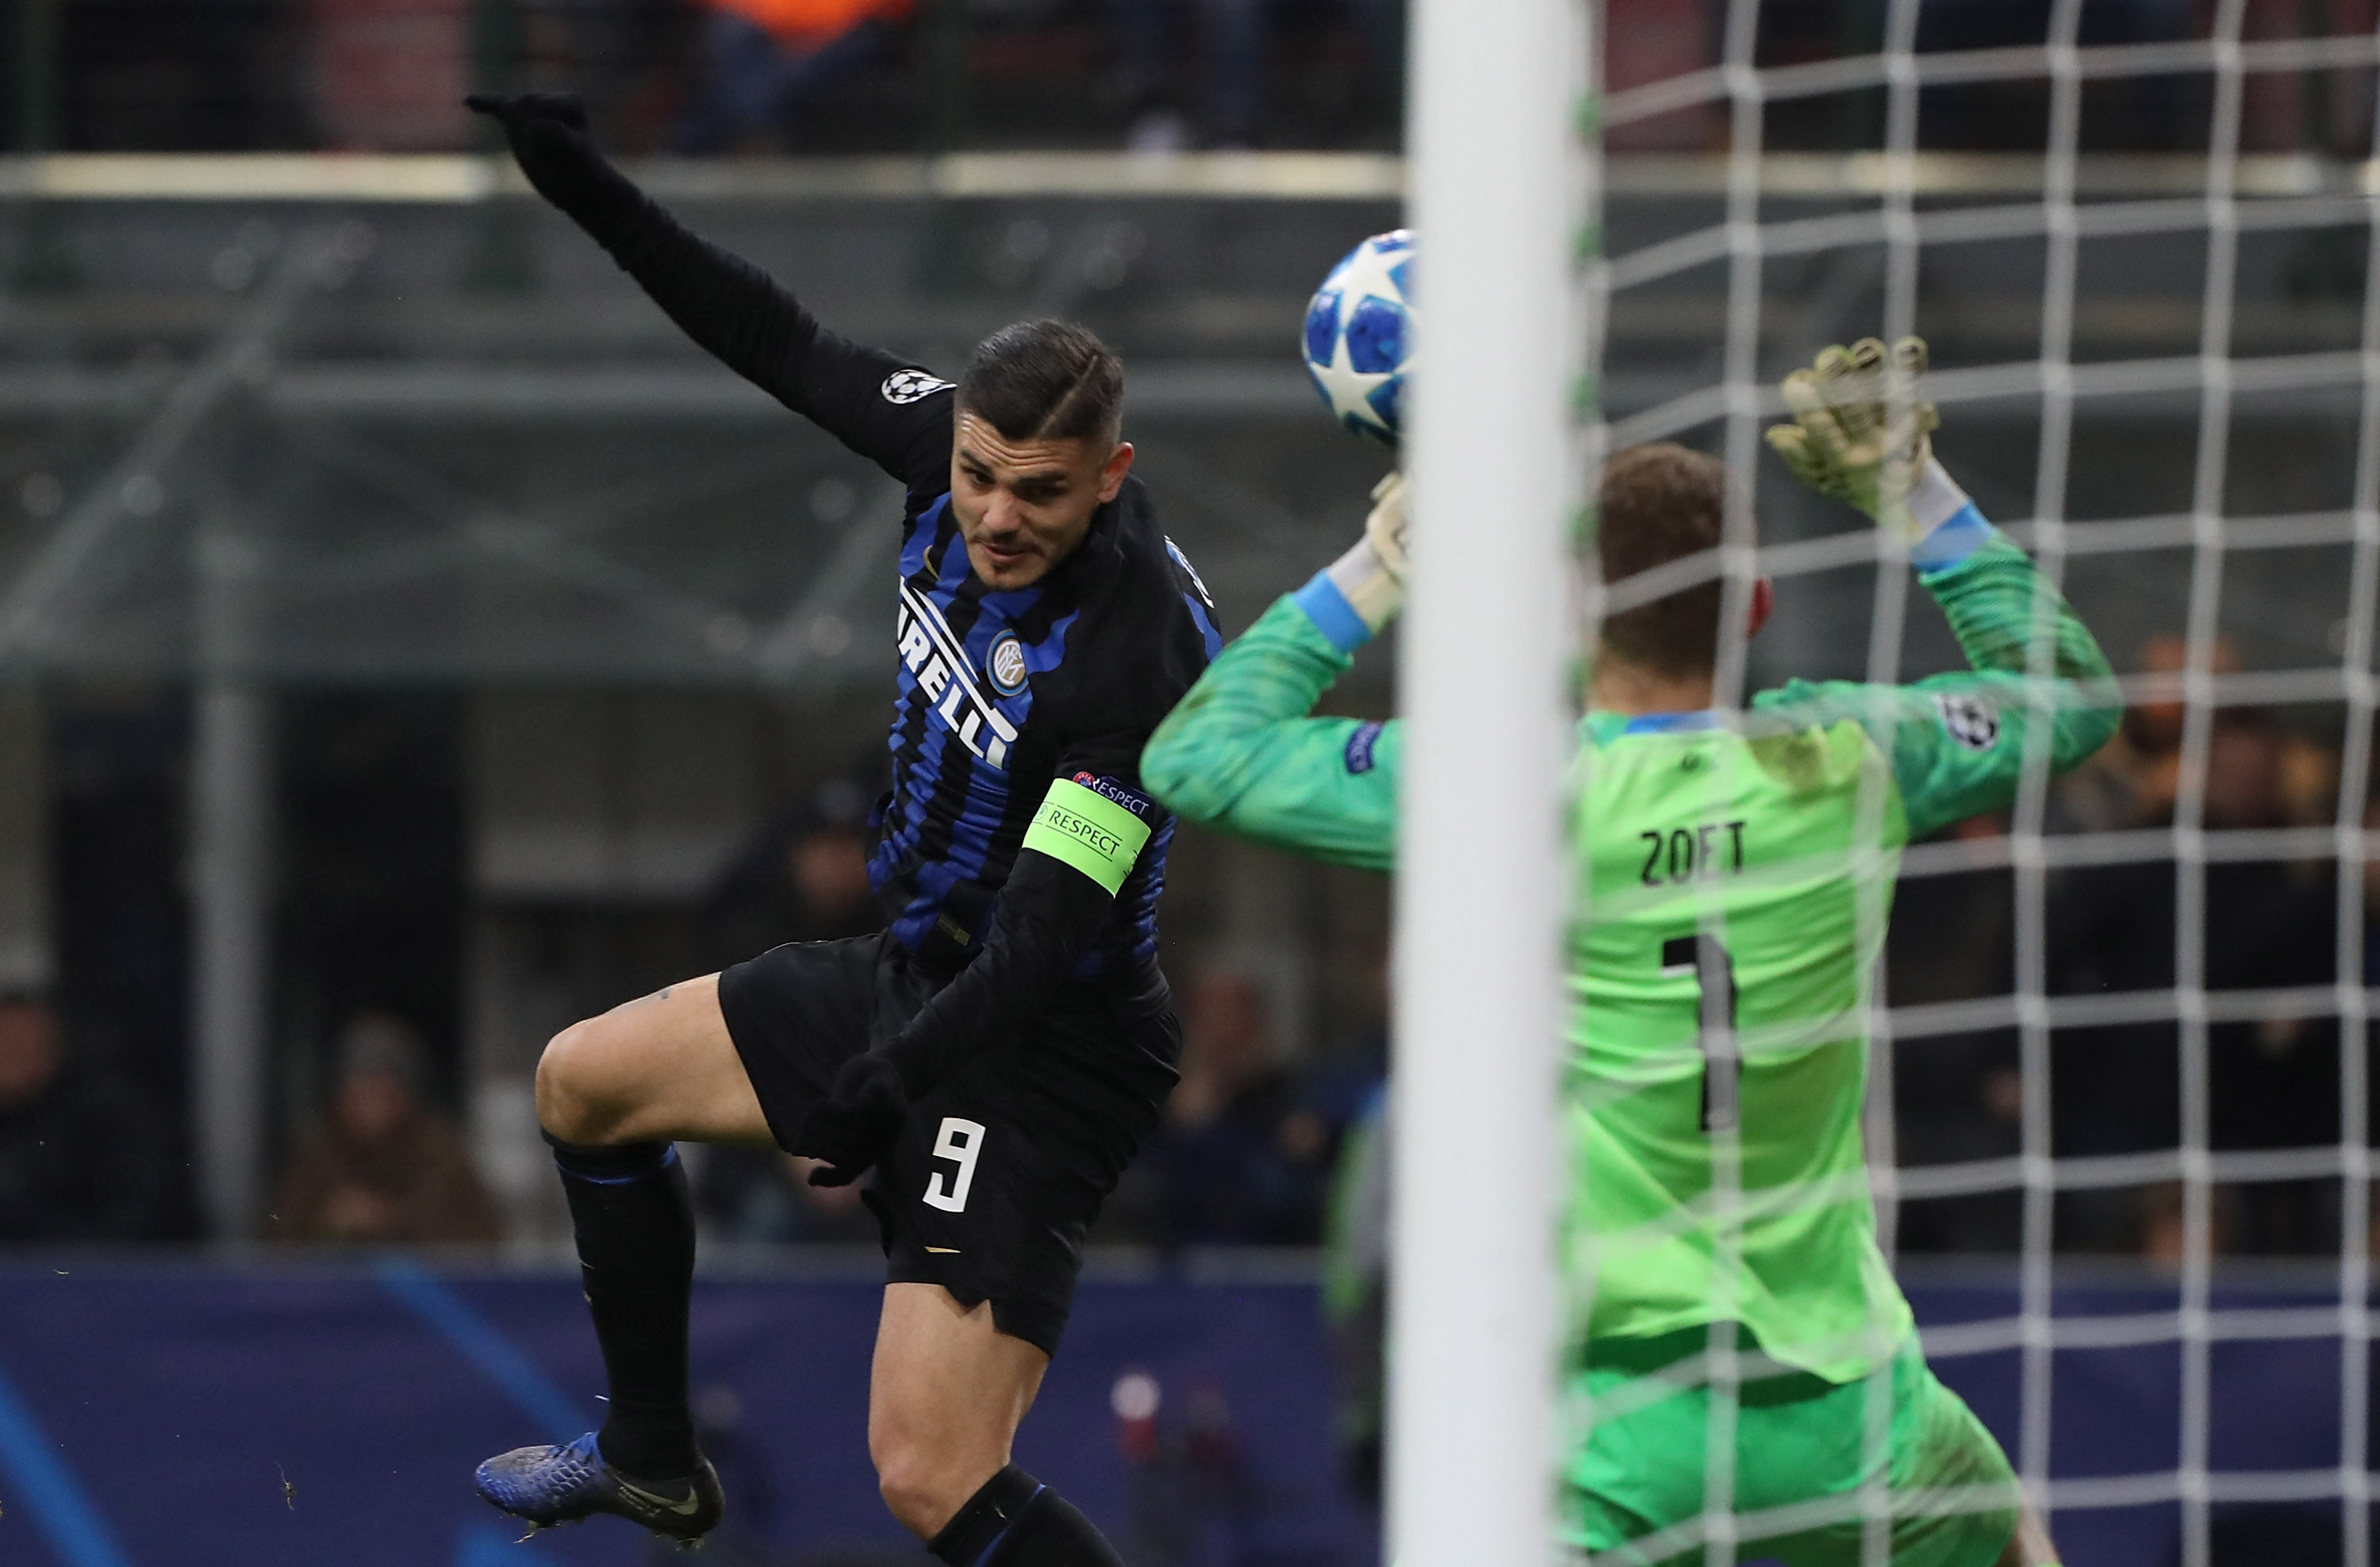 UCL, the photos from Inter vs. PSV Eindhoven